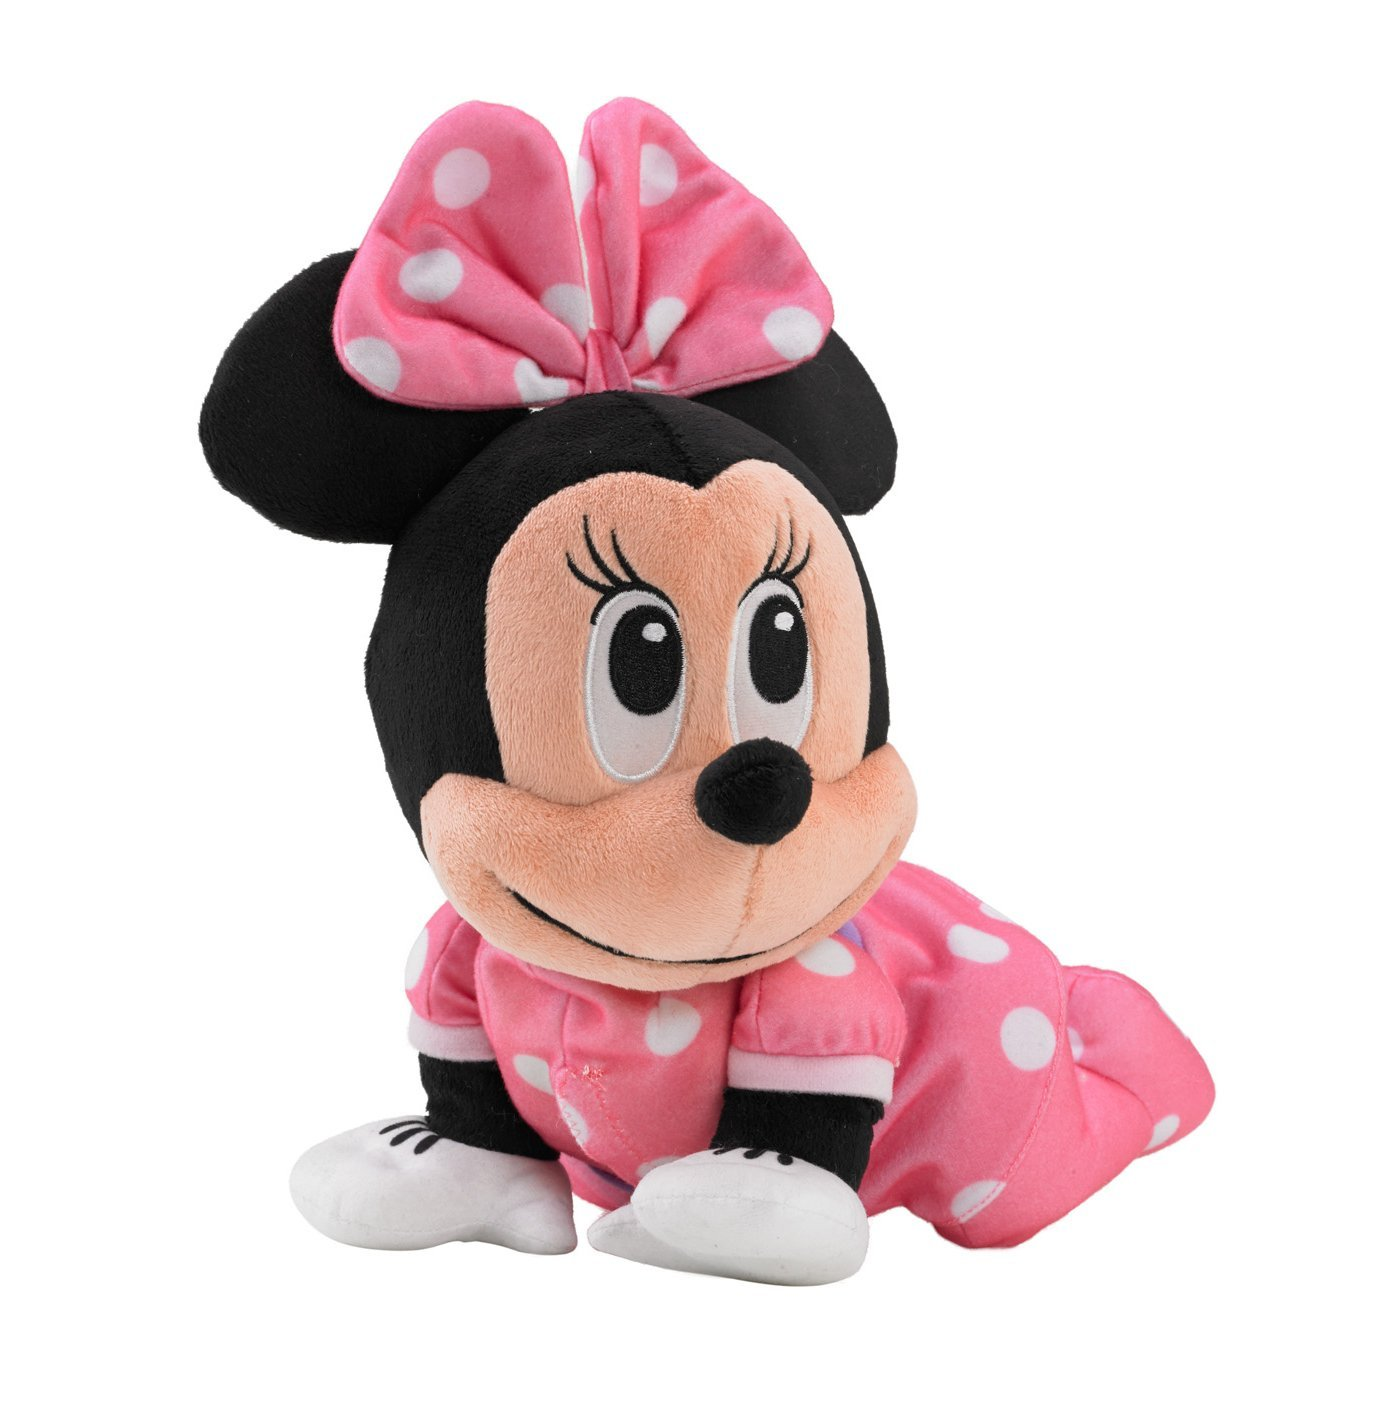 Baby Mickey Stuffed Animal